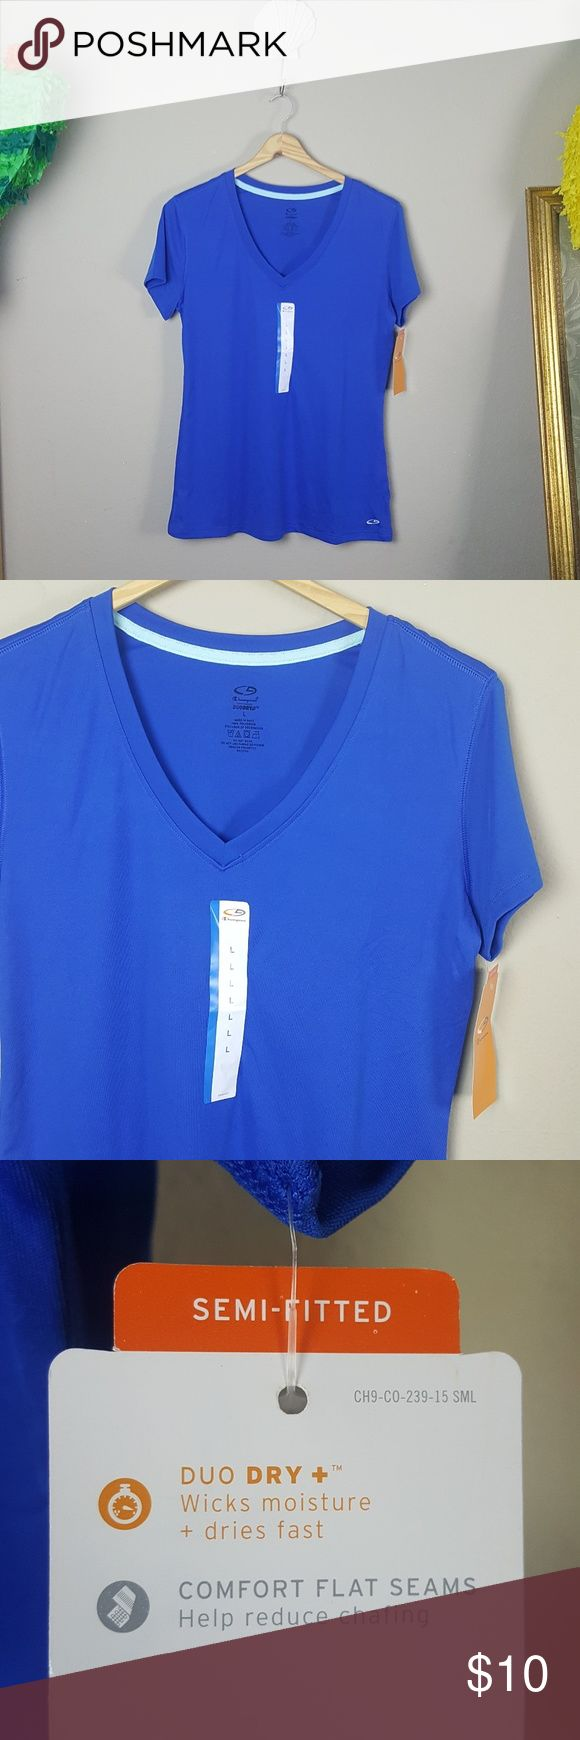 NWT Blue V Neck Champion Duo Dry Wick sz L NWT Blue V Neck Champion Duo Dry.... Wicks moisture and dries faster. Semi-fitted. Comfort flat seams to reduce chafing. 100% polyester. Champion Tops Tees - Short Sleeve